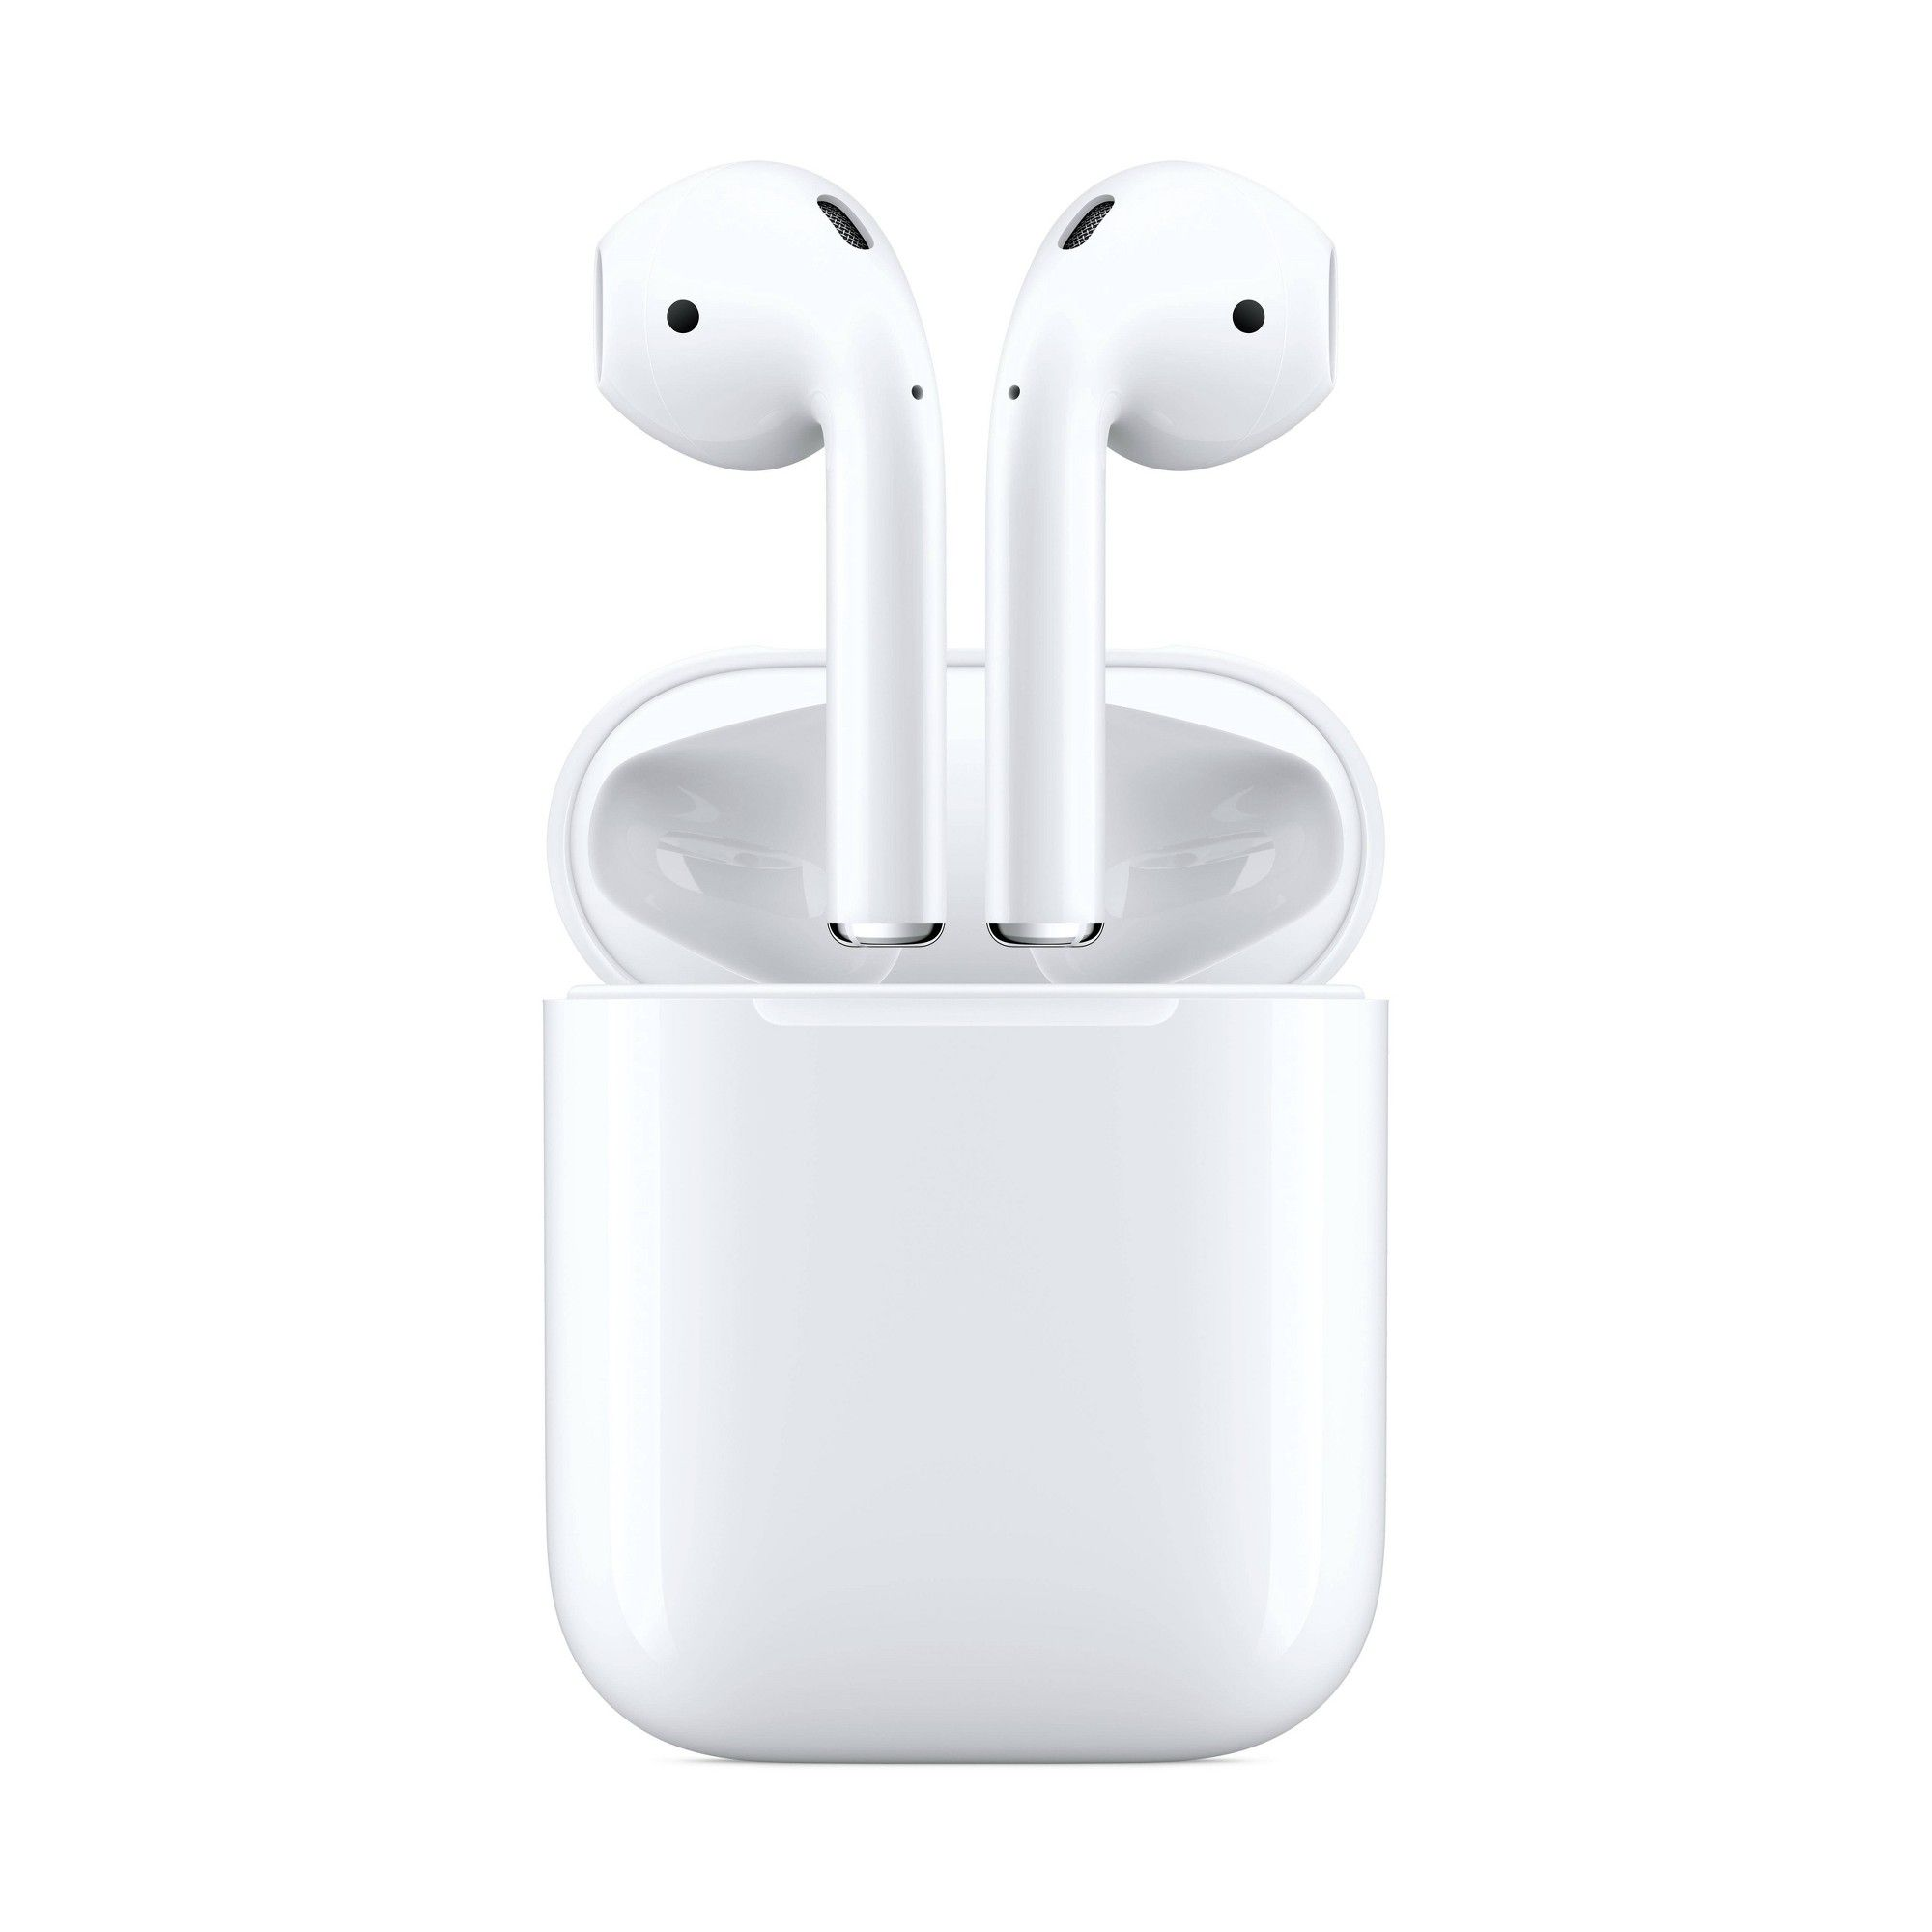 Apple Airpods With Wired Charging Case White Apple Airpods 2 Apple Accessories Iphone Accessories